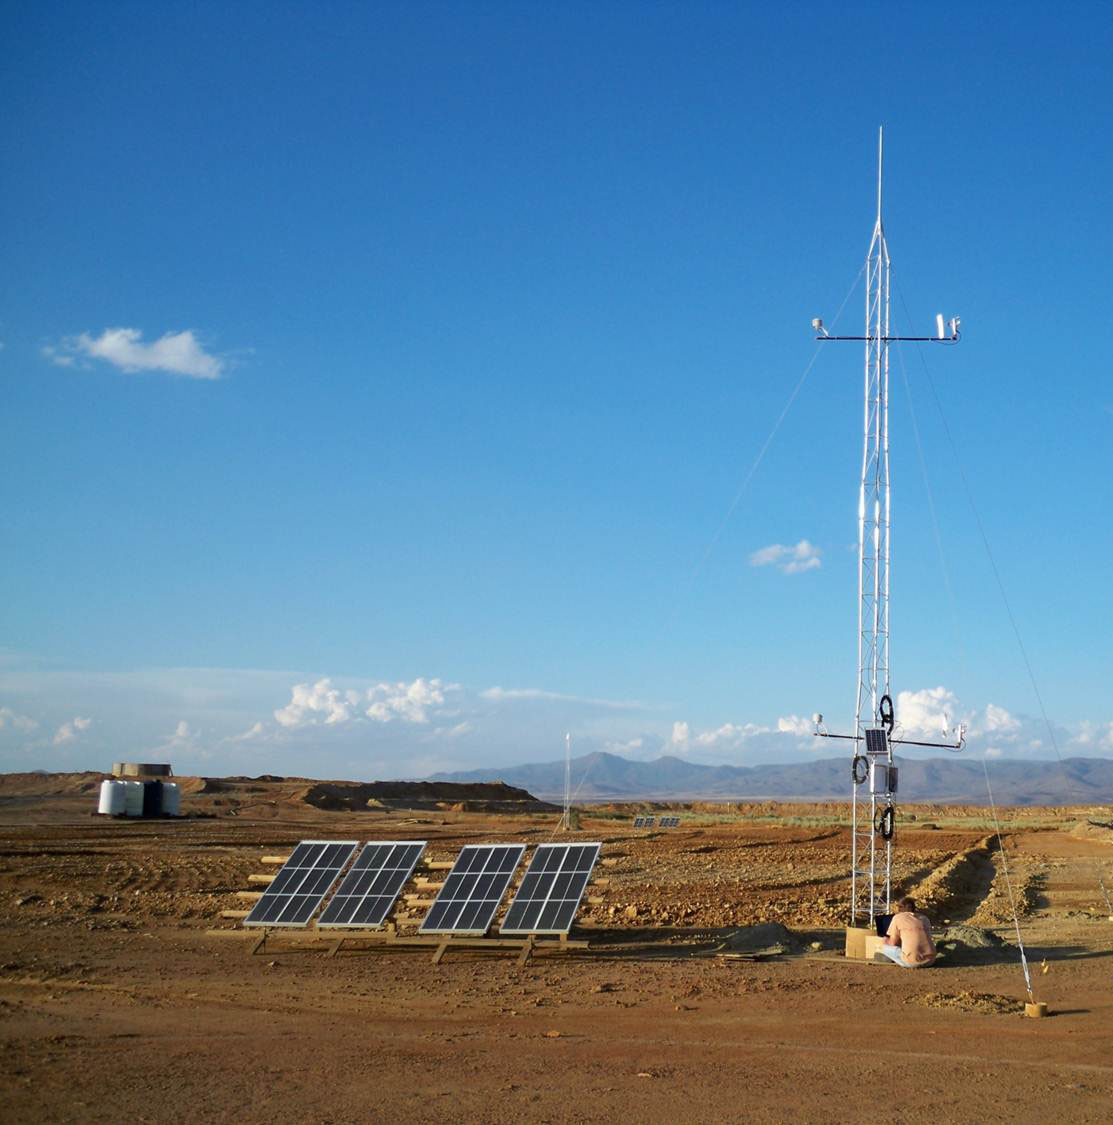 10-meter dust flux tower (1 of 2) designed to measure meteorological parameters and vertical dust fluxes from the contaminated tailings.